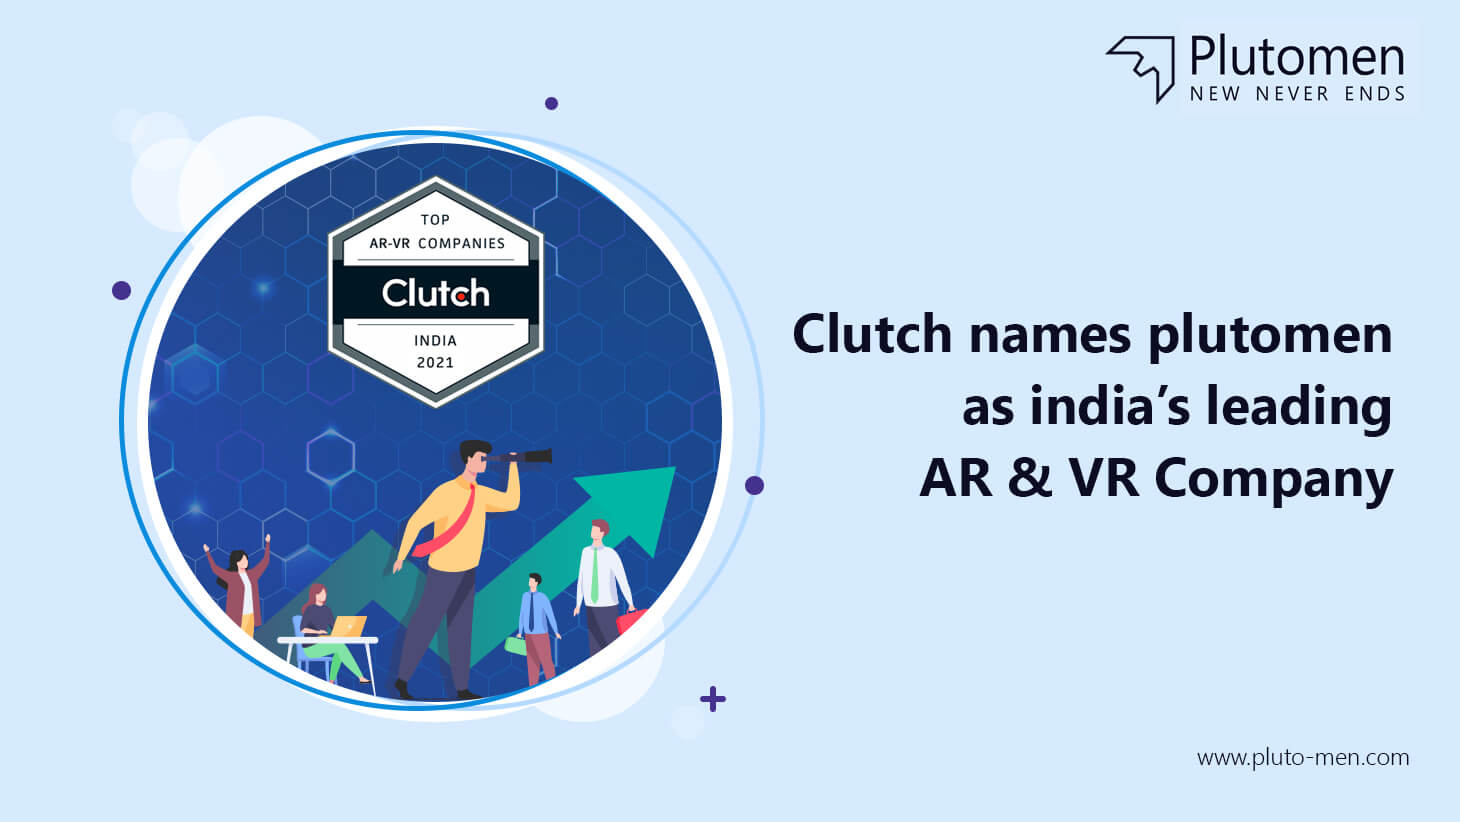 Clutch Names Plutomen as India's leading AR & VR Company